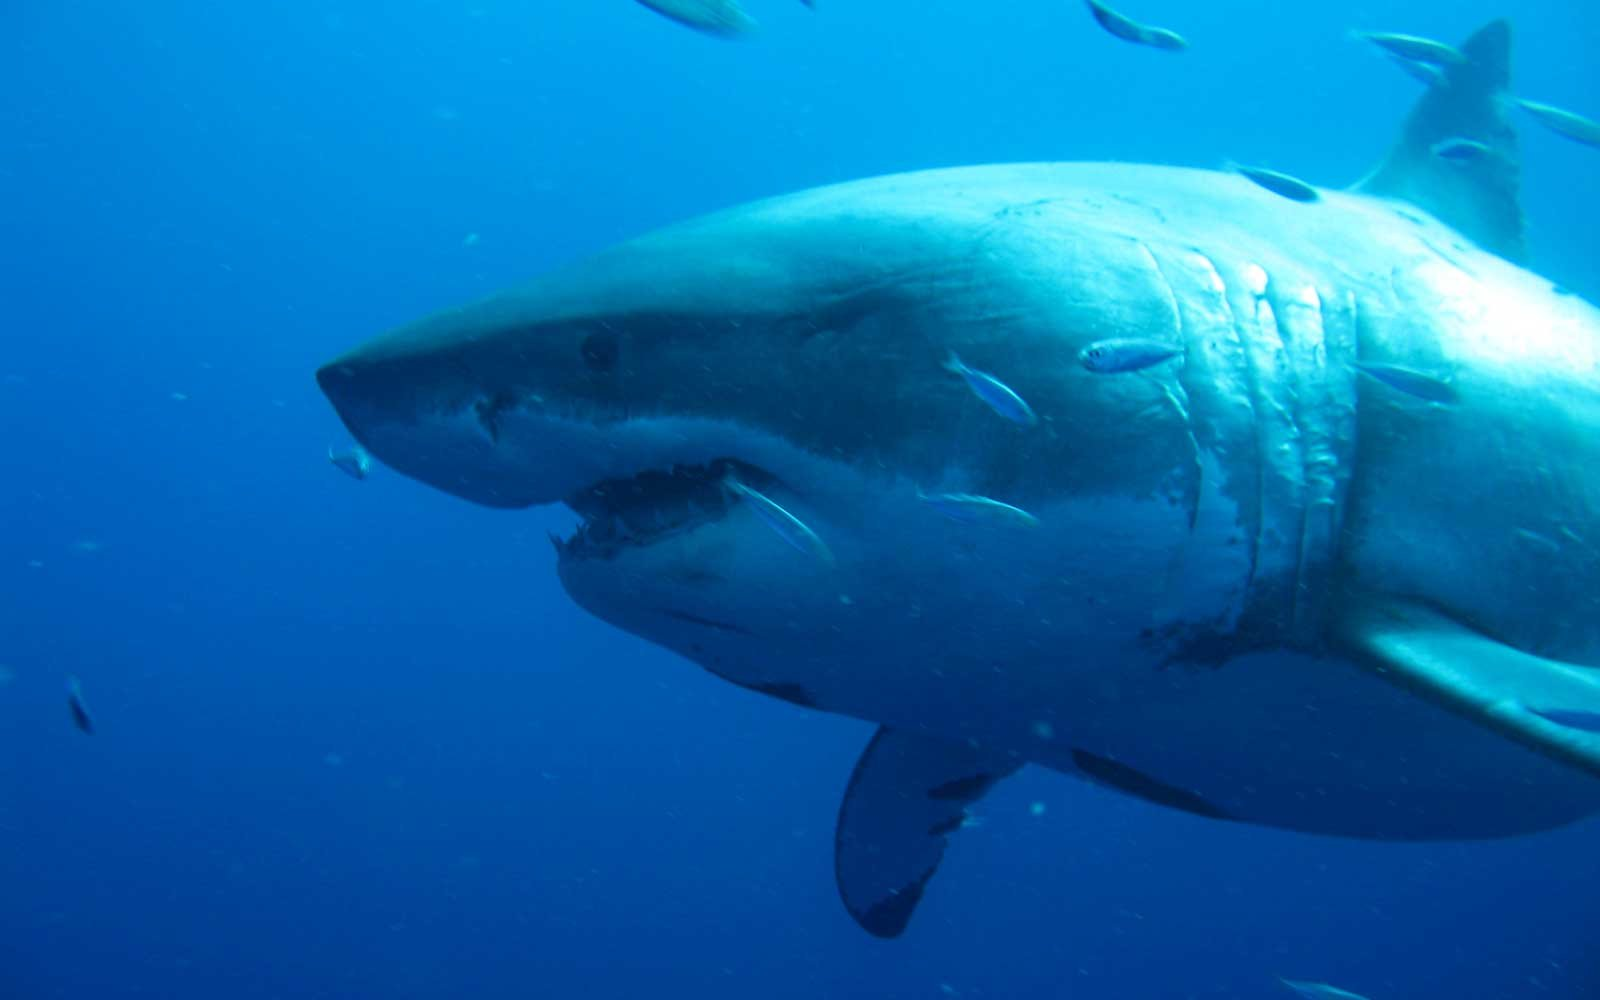 Deep Blue, the legendary Great White Shark